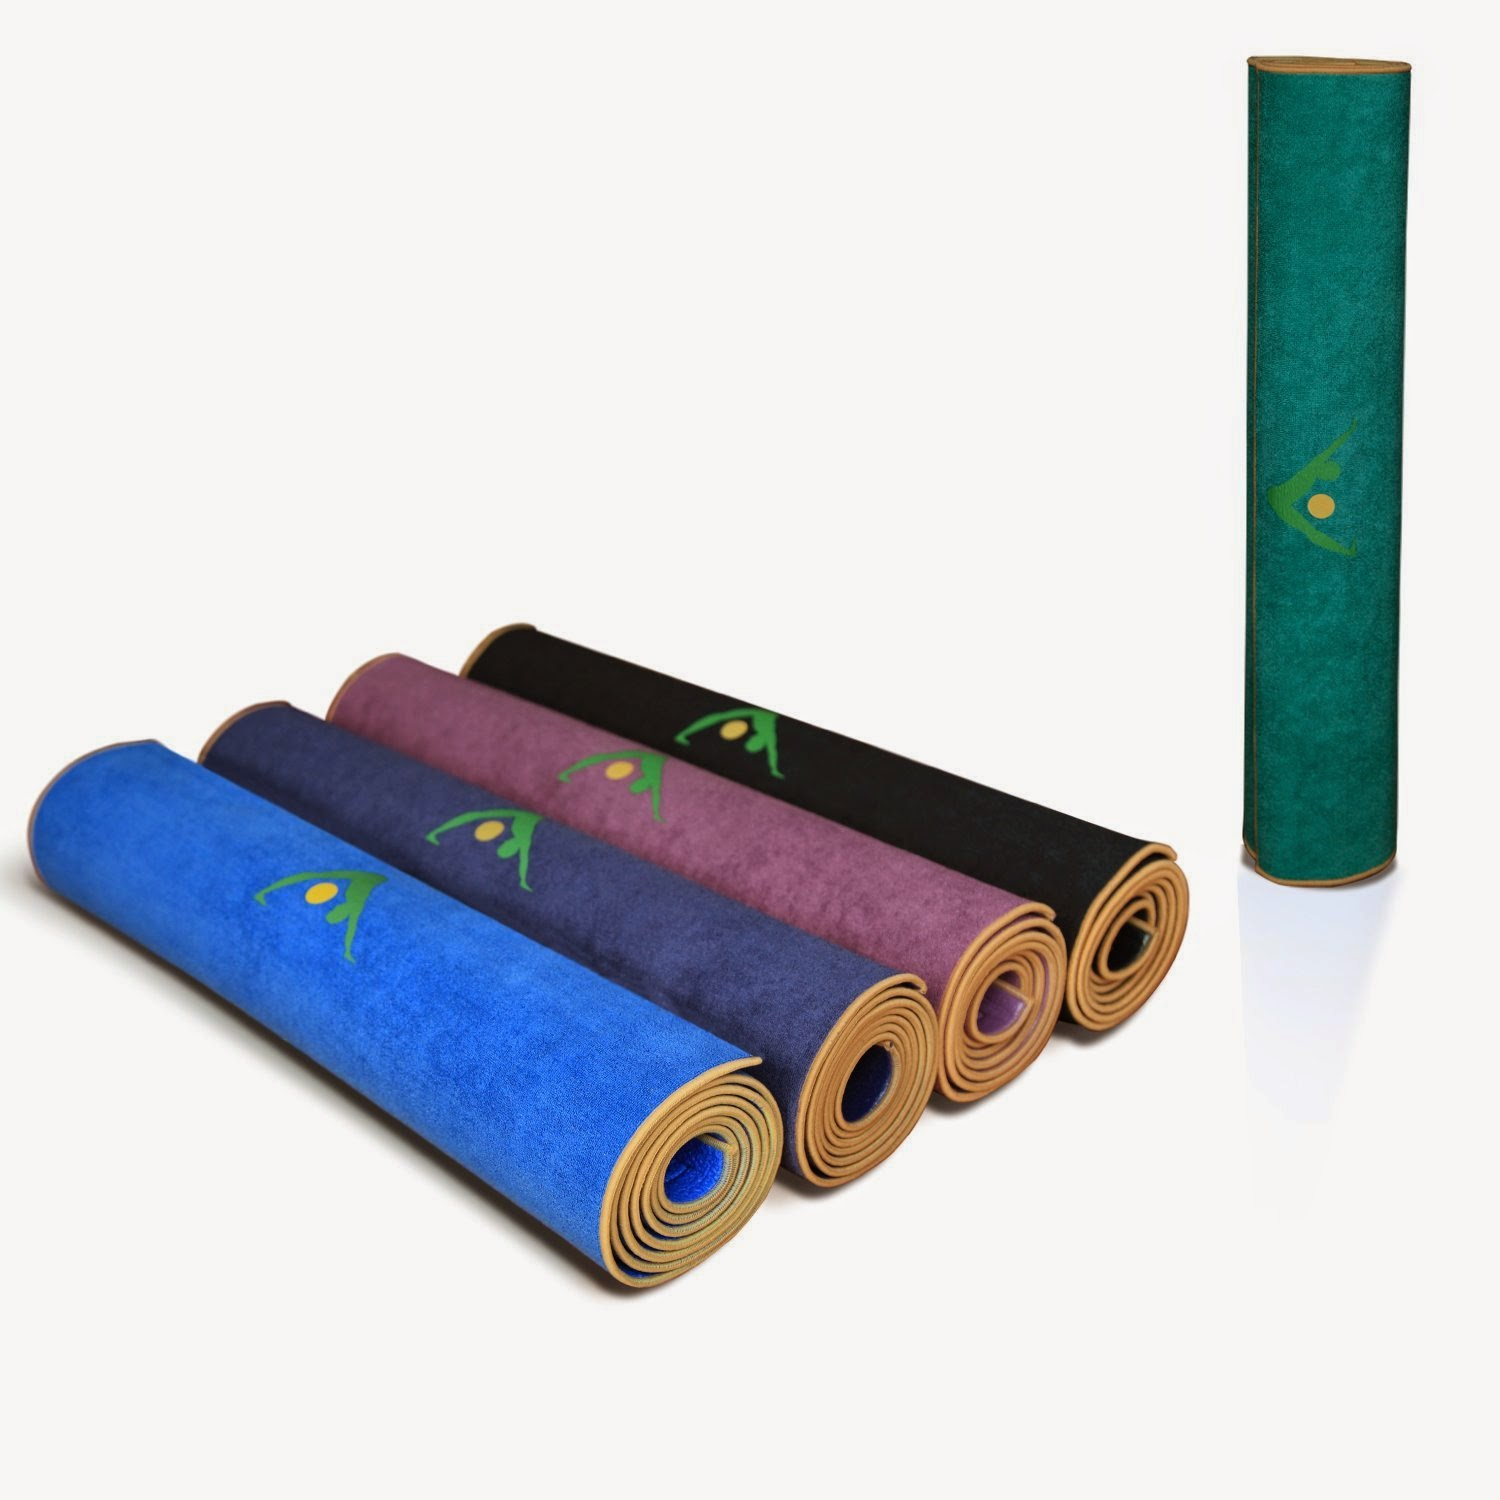 Aurorae Yoga Synergy Yoga Mat Towel Combination In: First Time Mom And Dad: April 2014